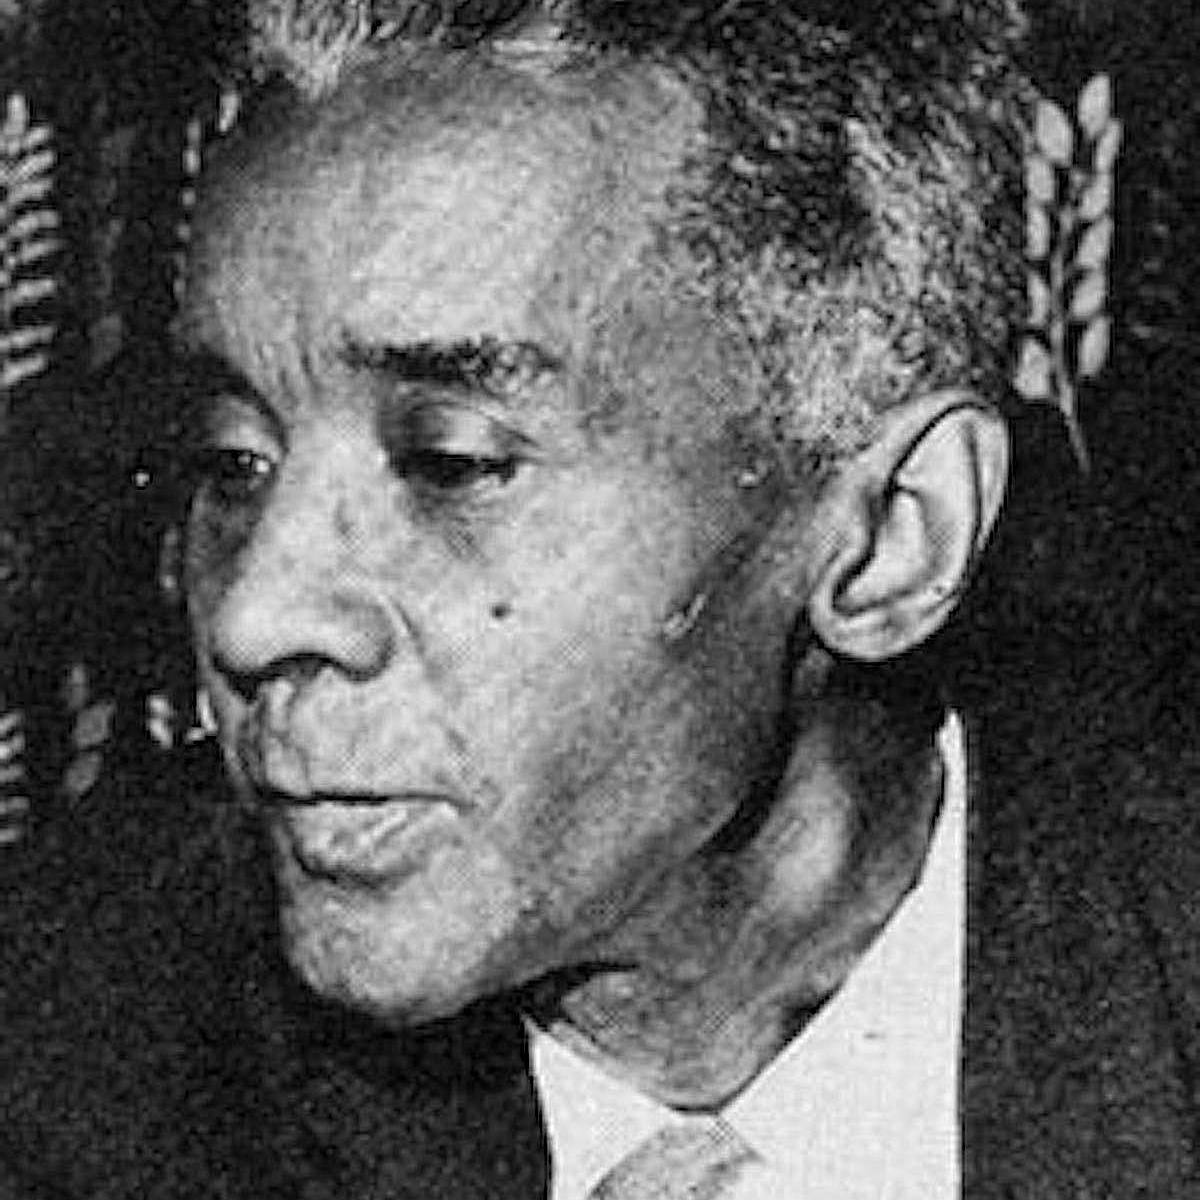 Photo of C.L.R. James, Trinidadian intellectual and activist who made important contributions to sociology.